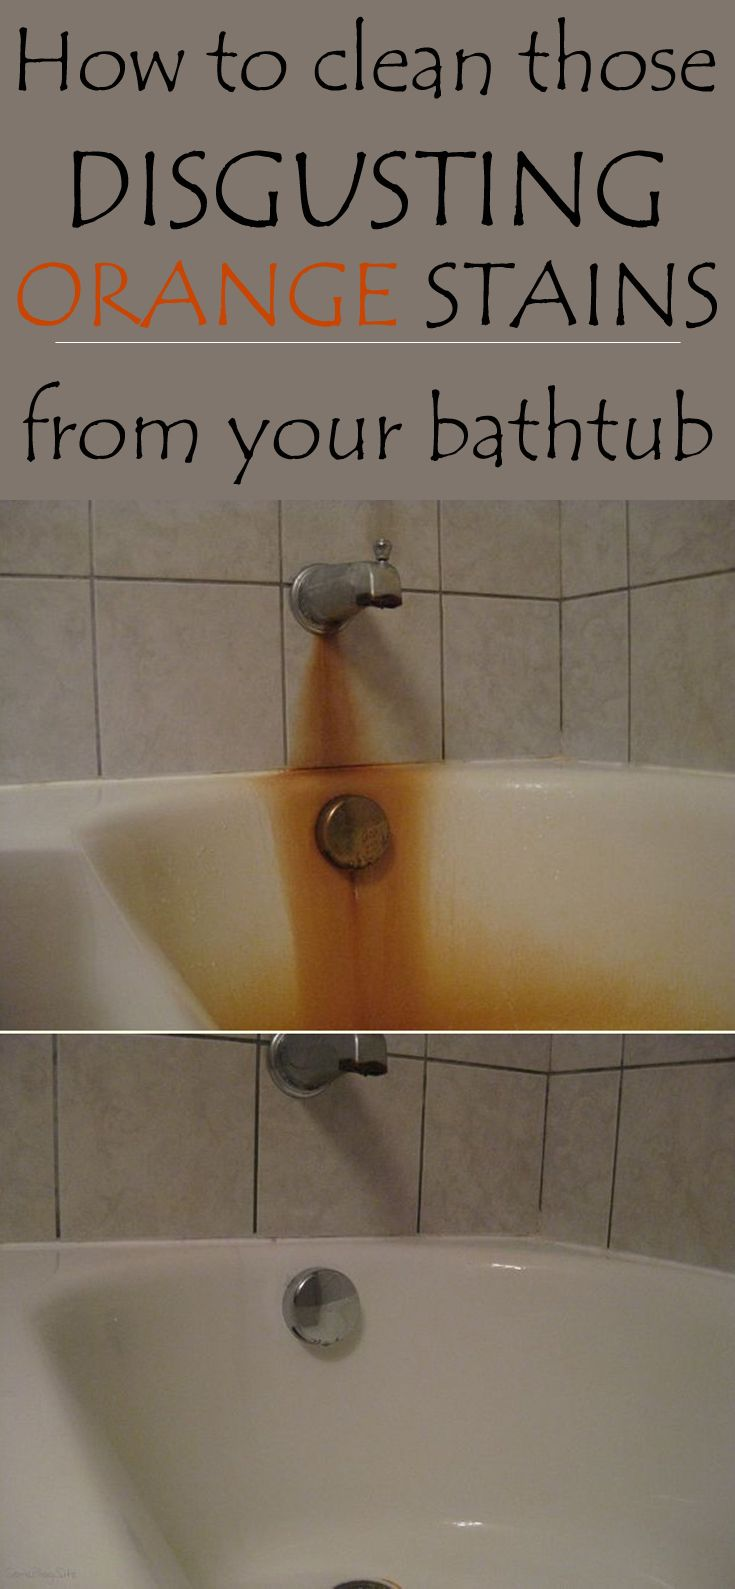 How To Clean Disgusting Orange Stains From Your Bathtub Cleaningtutorials Net Your Cleaning Solutions House Cleaning Tips Cleaning Hacks Household Cleaning Tips